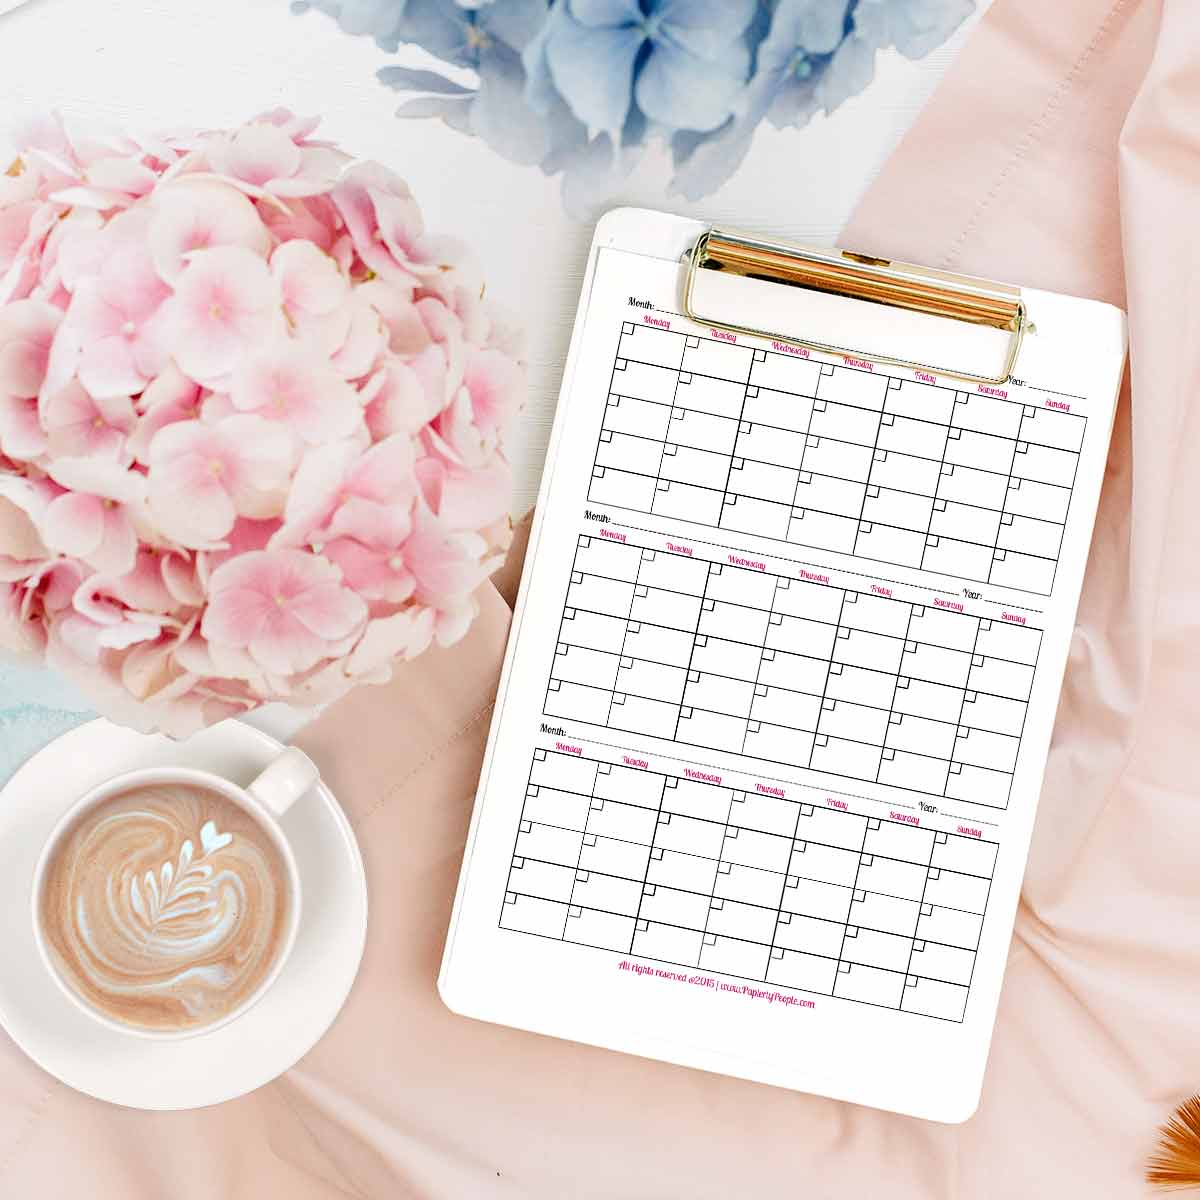 3 Month Calendar Page - Printable planner pages for Staples ARC Notebook or 3 Ring Binders.